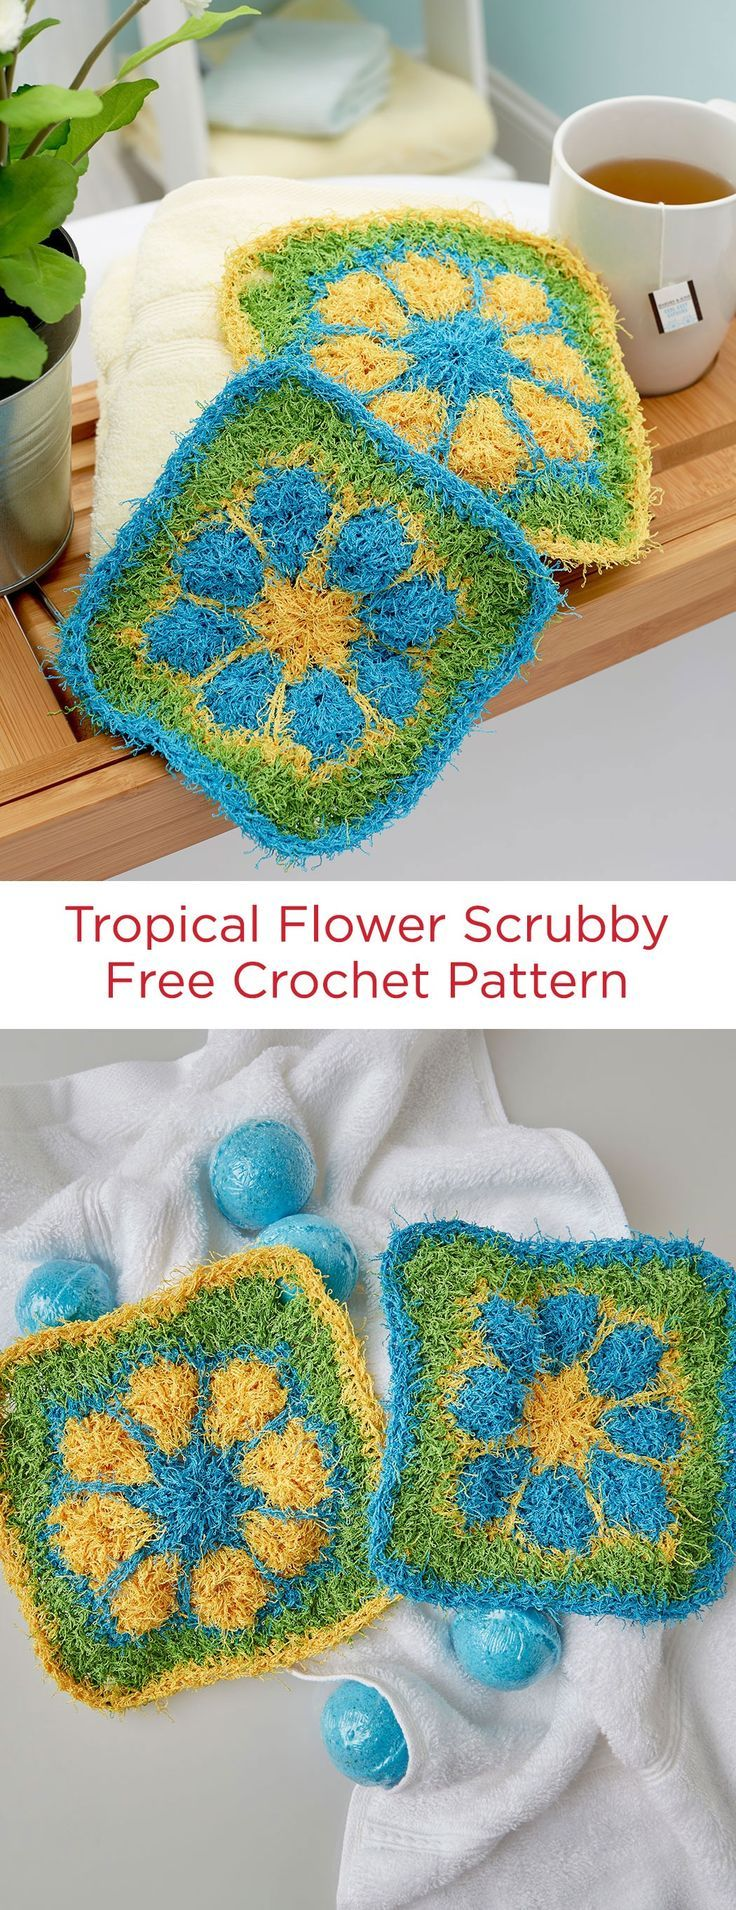 Tropical Flower Scrubby Free Crochet Pattern in Red Heart Scrubby yarn -- This fun crocheted square is perfect for making a scrubby to use in your at-home pseudo spa. Choose colors that are bright or more peaceful…whatever makes you happiest!